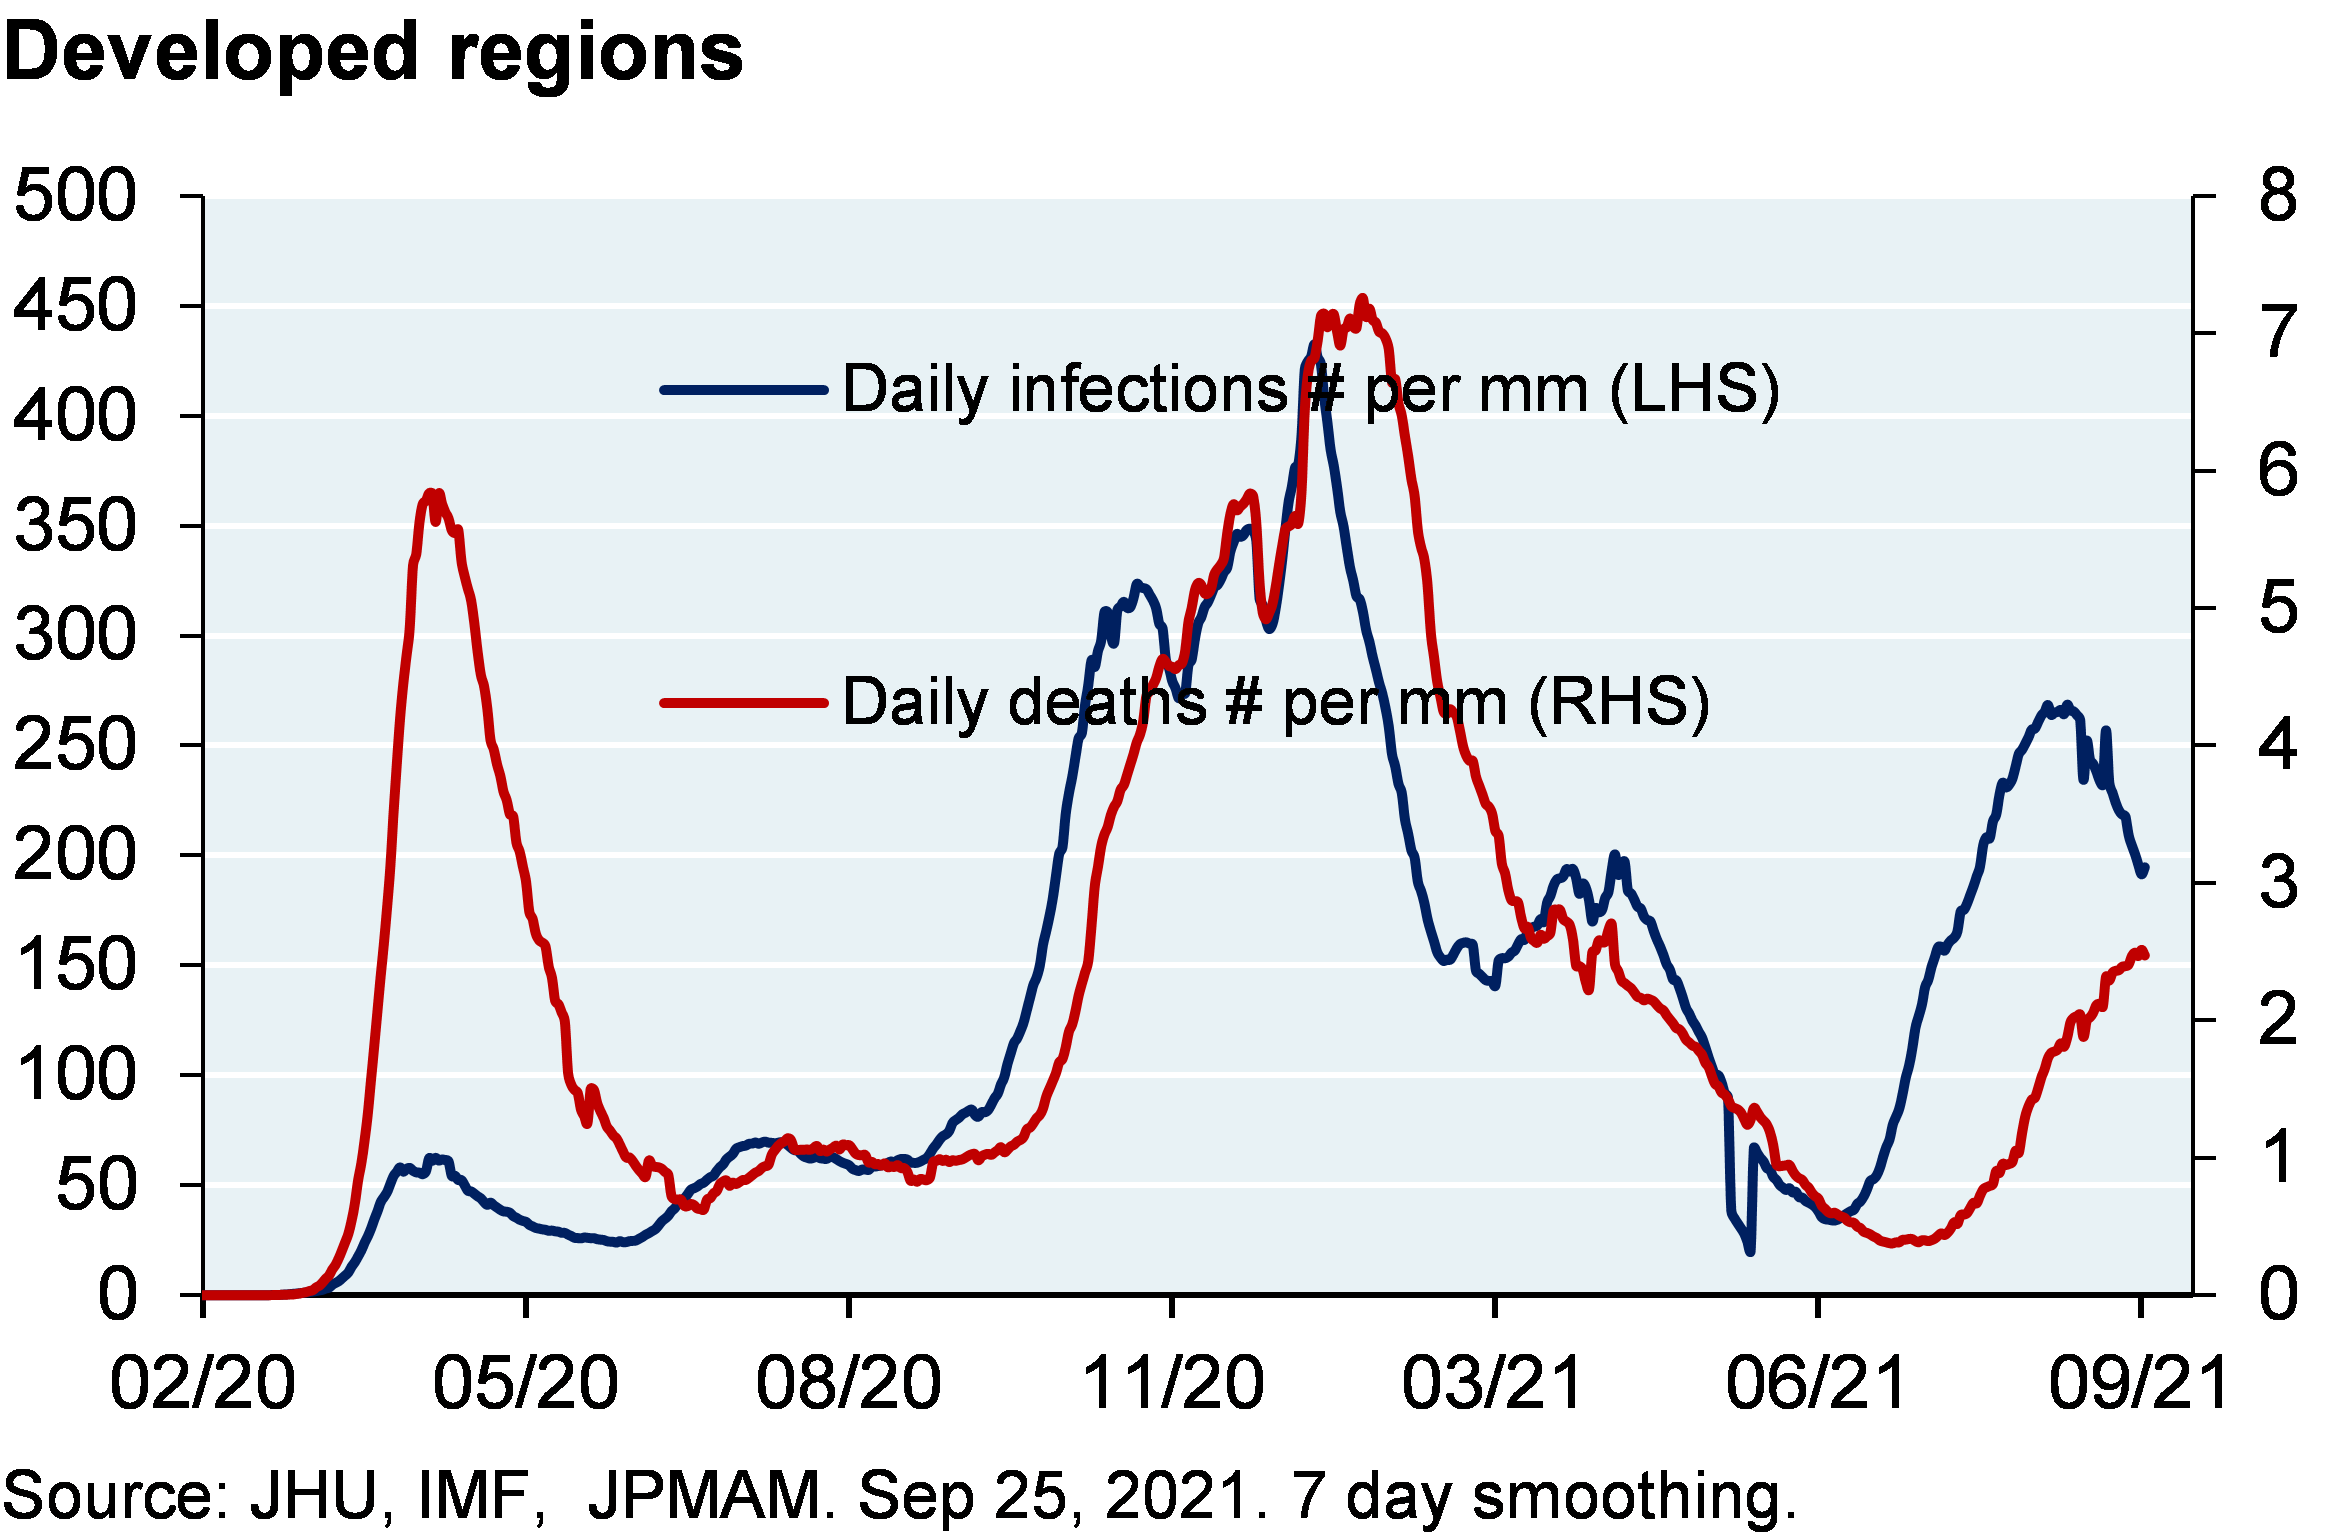 Line chart shows daily infections per million and daily deaths per million for the developed world. The rise in infections and mortality are much higher than was anticipated when the vaccination programs began. Daily infections are above 200 per mm and daily deaths are above 2 per mm.